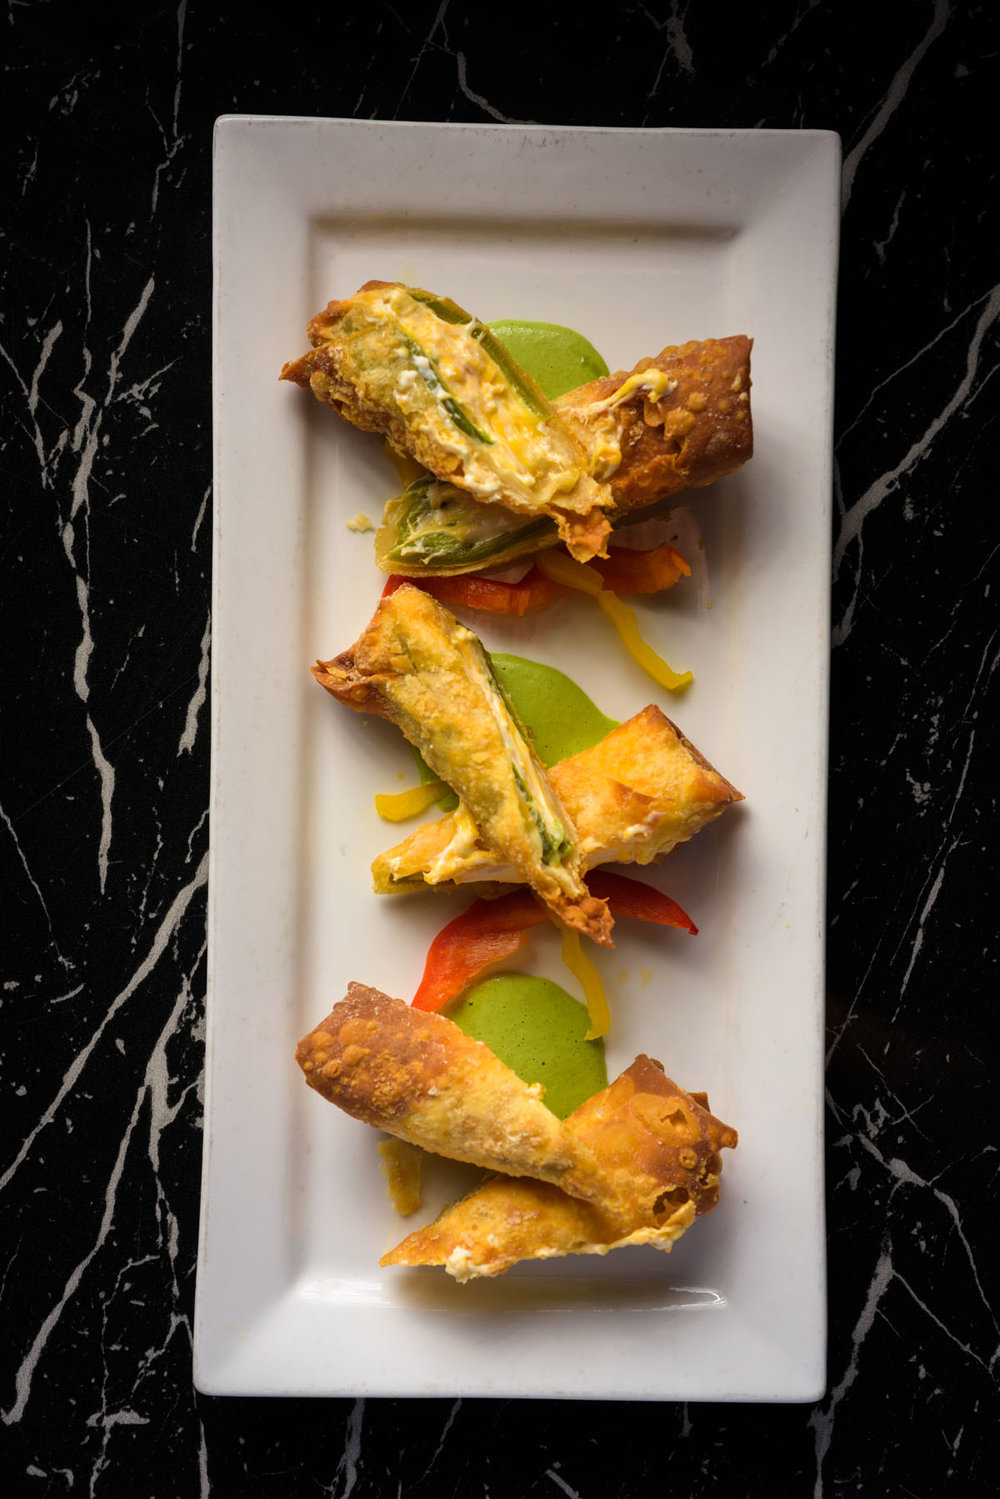 jalapeno poppers – Food Photos at Firehouse 37 restaurant in San Ramon - by Bay Area commercial photographer Chris Schmauch